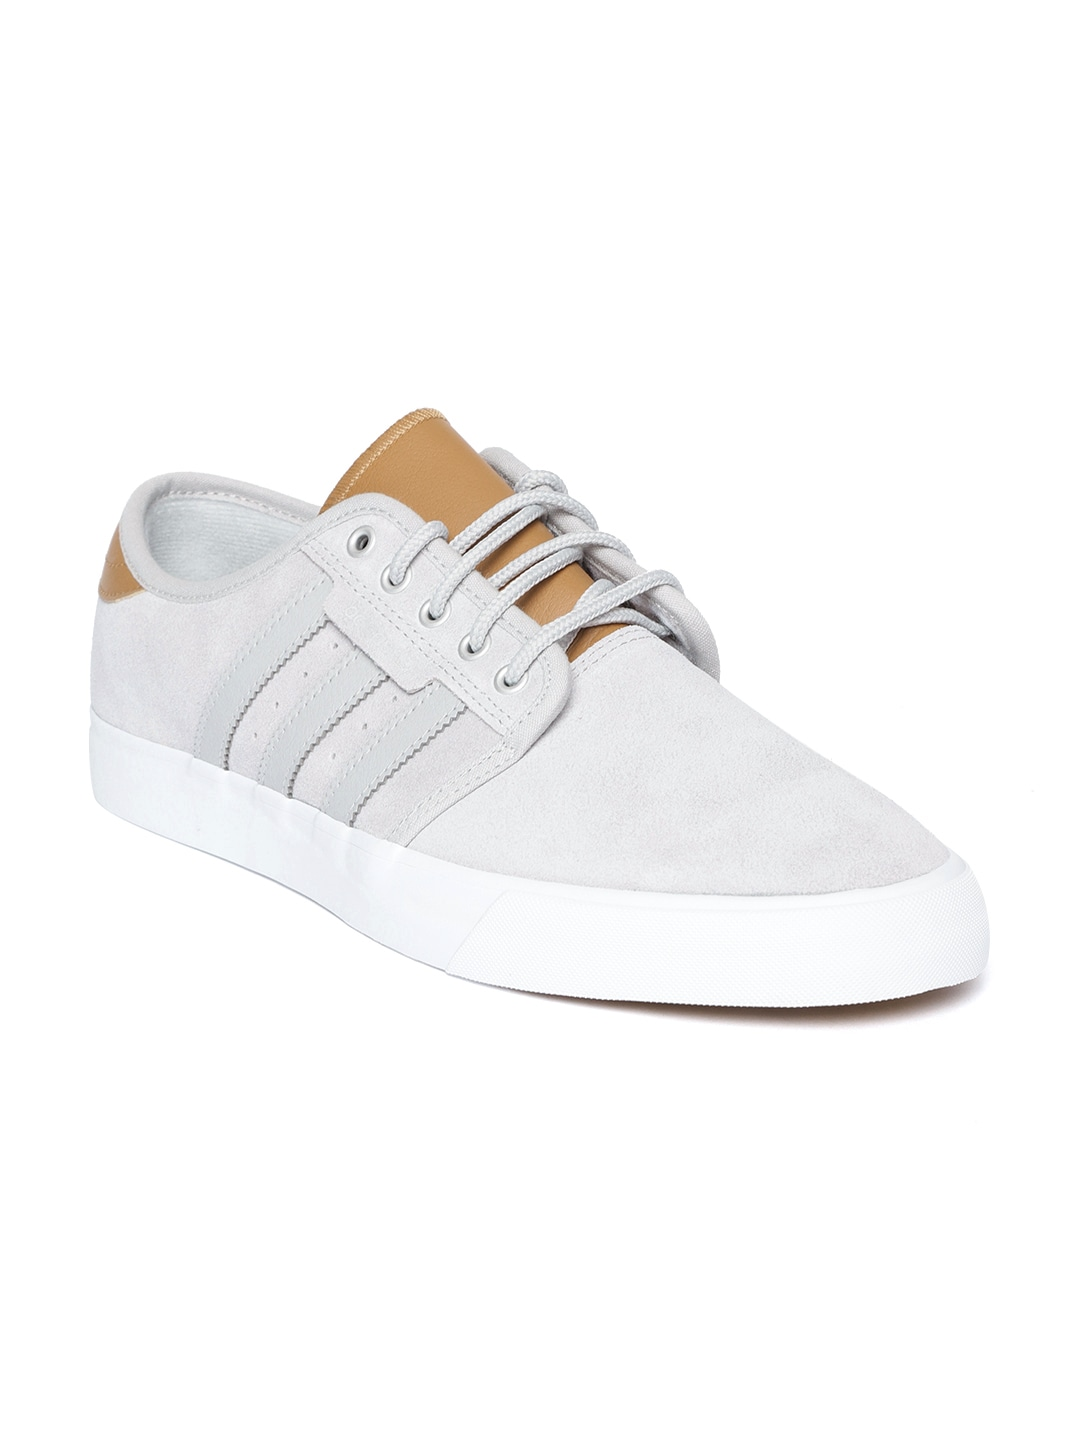 7bf67e3bd3dbb6 Adidas Shoes - Buy Adidas Shoes for Men   Women Online - Myntra